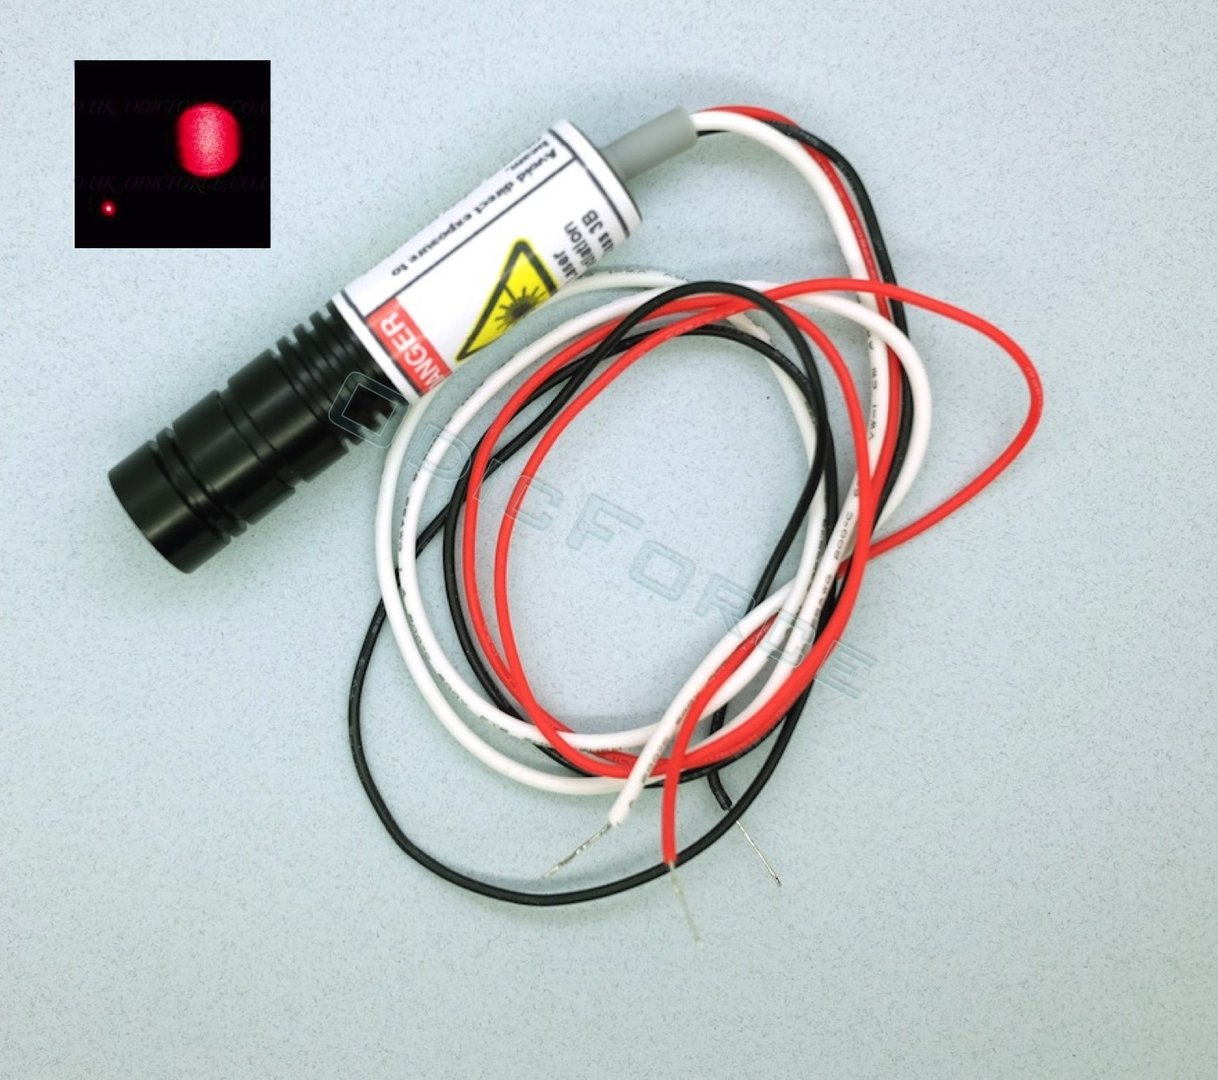 100mW Red (650nm) Laser Diode Module with Adjustable Locking Focus TTL Modulation (16mm)